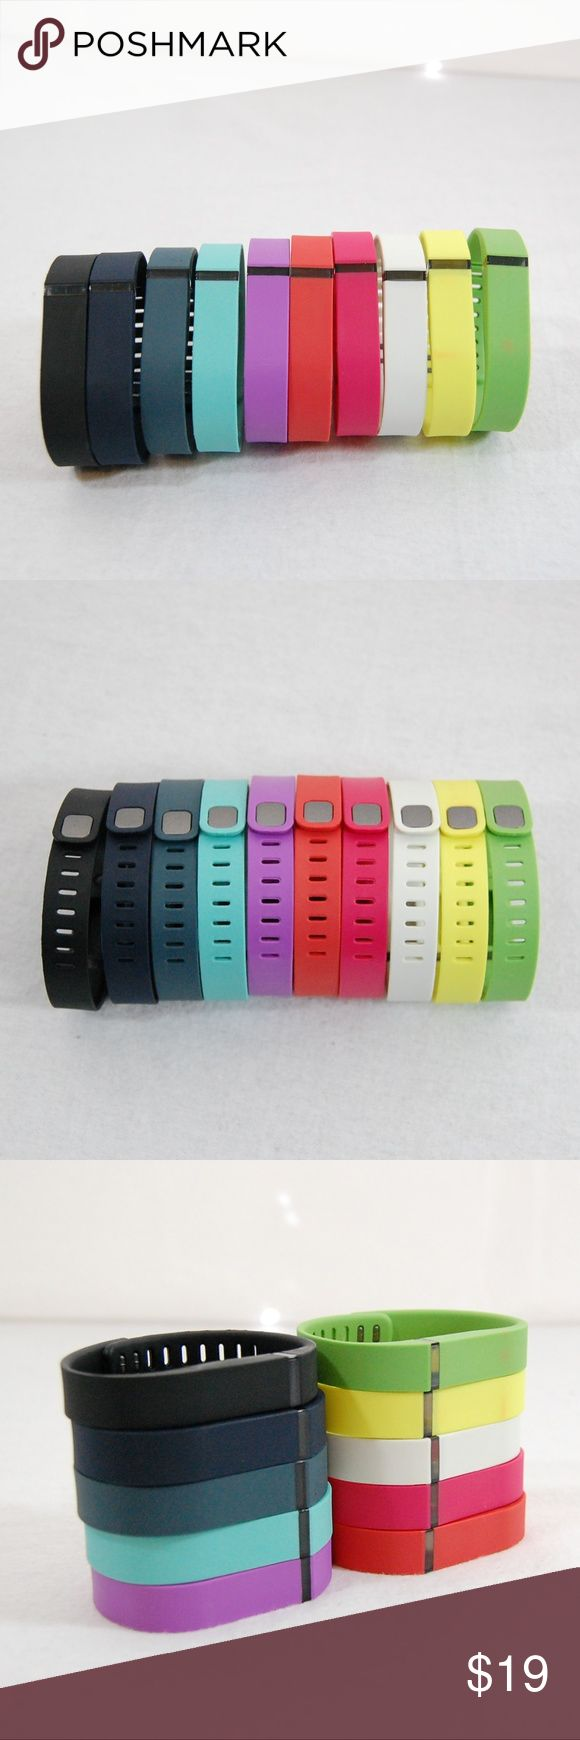 🆕 NWOT: Set of FitBit Flex Bracelets / Holders Set includes all 10 bands shown.  Each band can be worn alone as a bracelet (or you can insert a FitBit Flex).  Size Large (see size chart pic).  NWOT - never taken out of the box until I took photos for this listing. Upon doing so, I noticed there are faint color marks on two of the bands - the green and the yellow (see last pic). Very hard to see & I haven't tried to remove, but wanted to disclose!  Antibacterial Material, soft, waterproof…